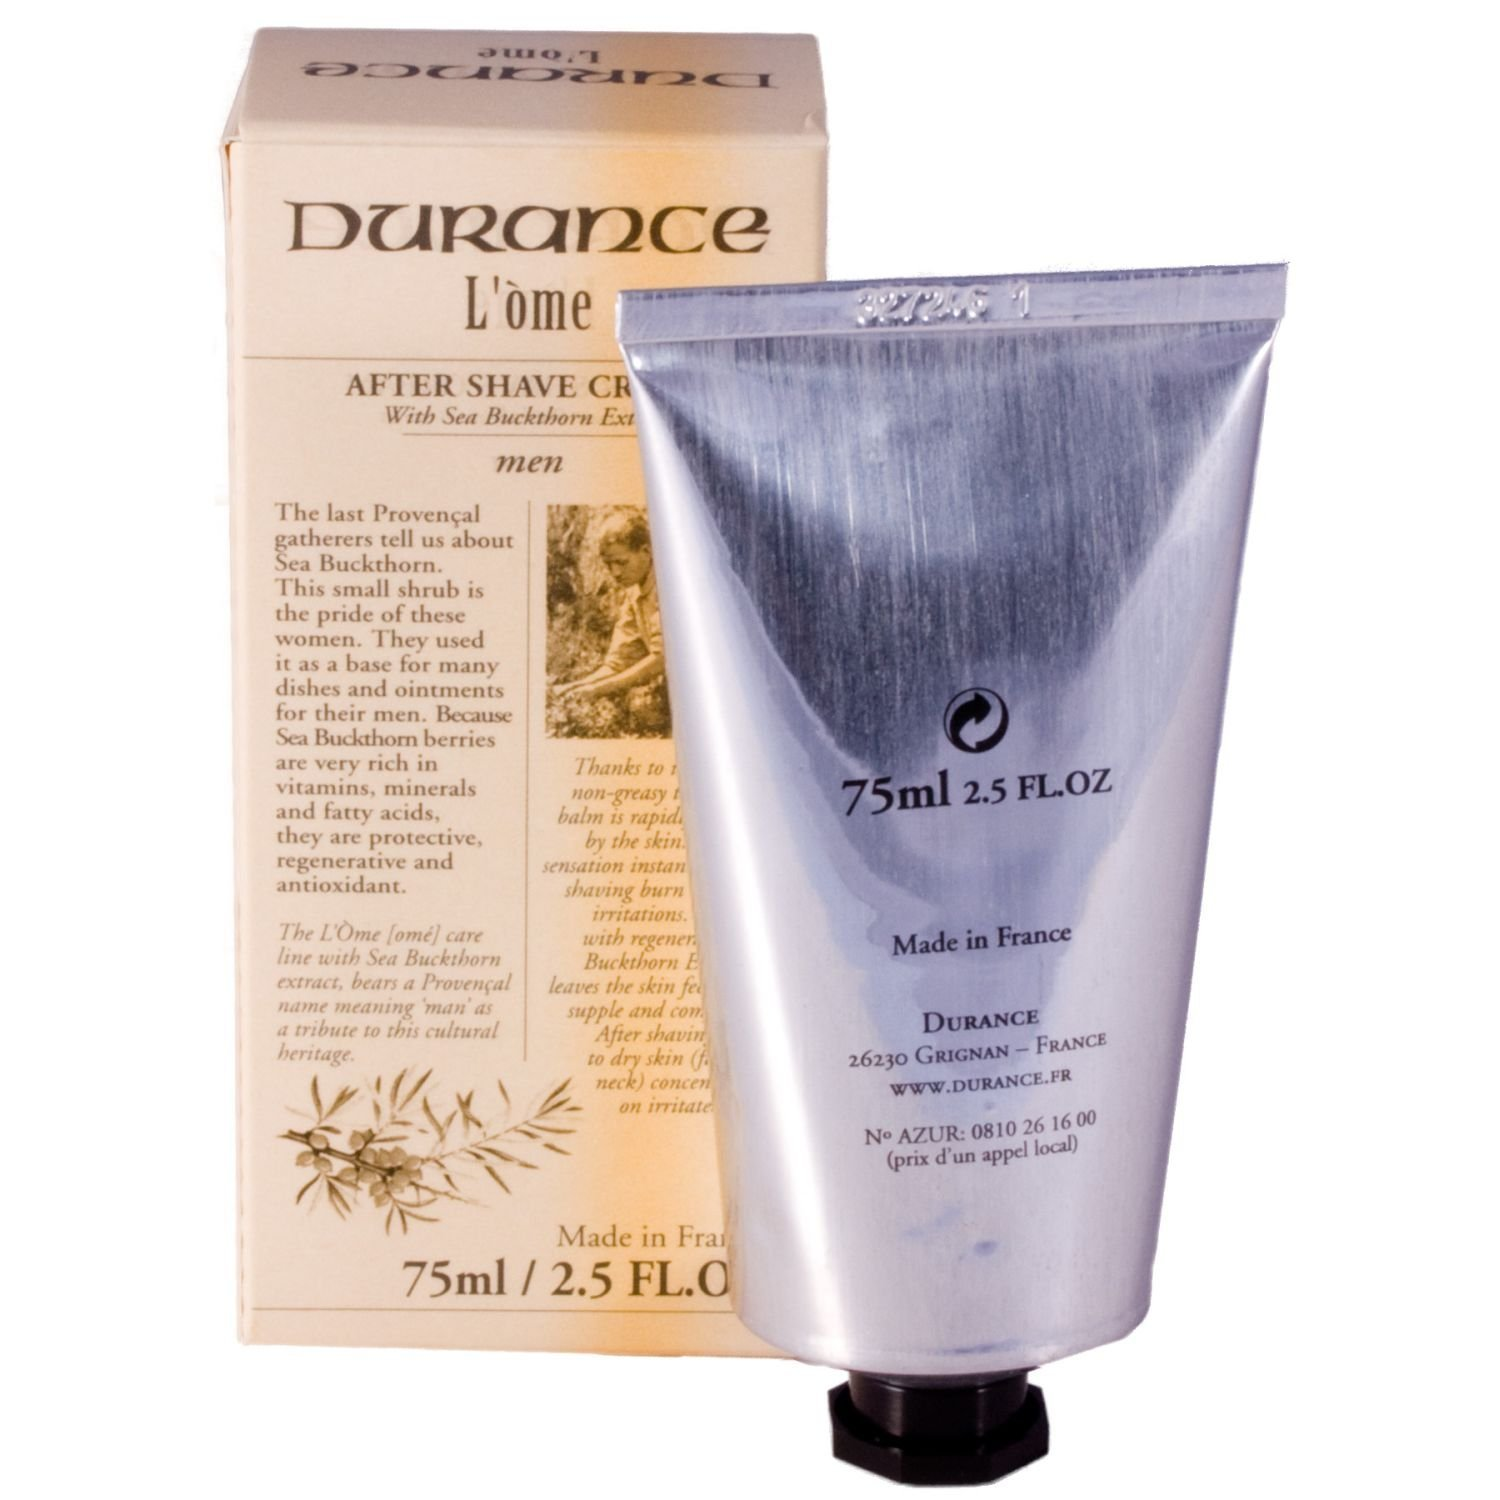 Durance L'Ome After Shave Cream Balm - 75ml Sea Buckthorne